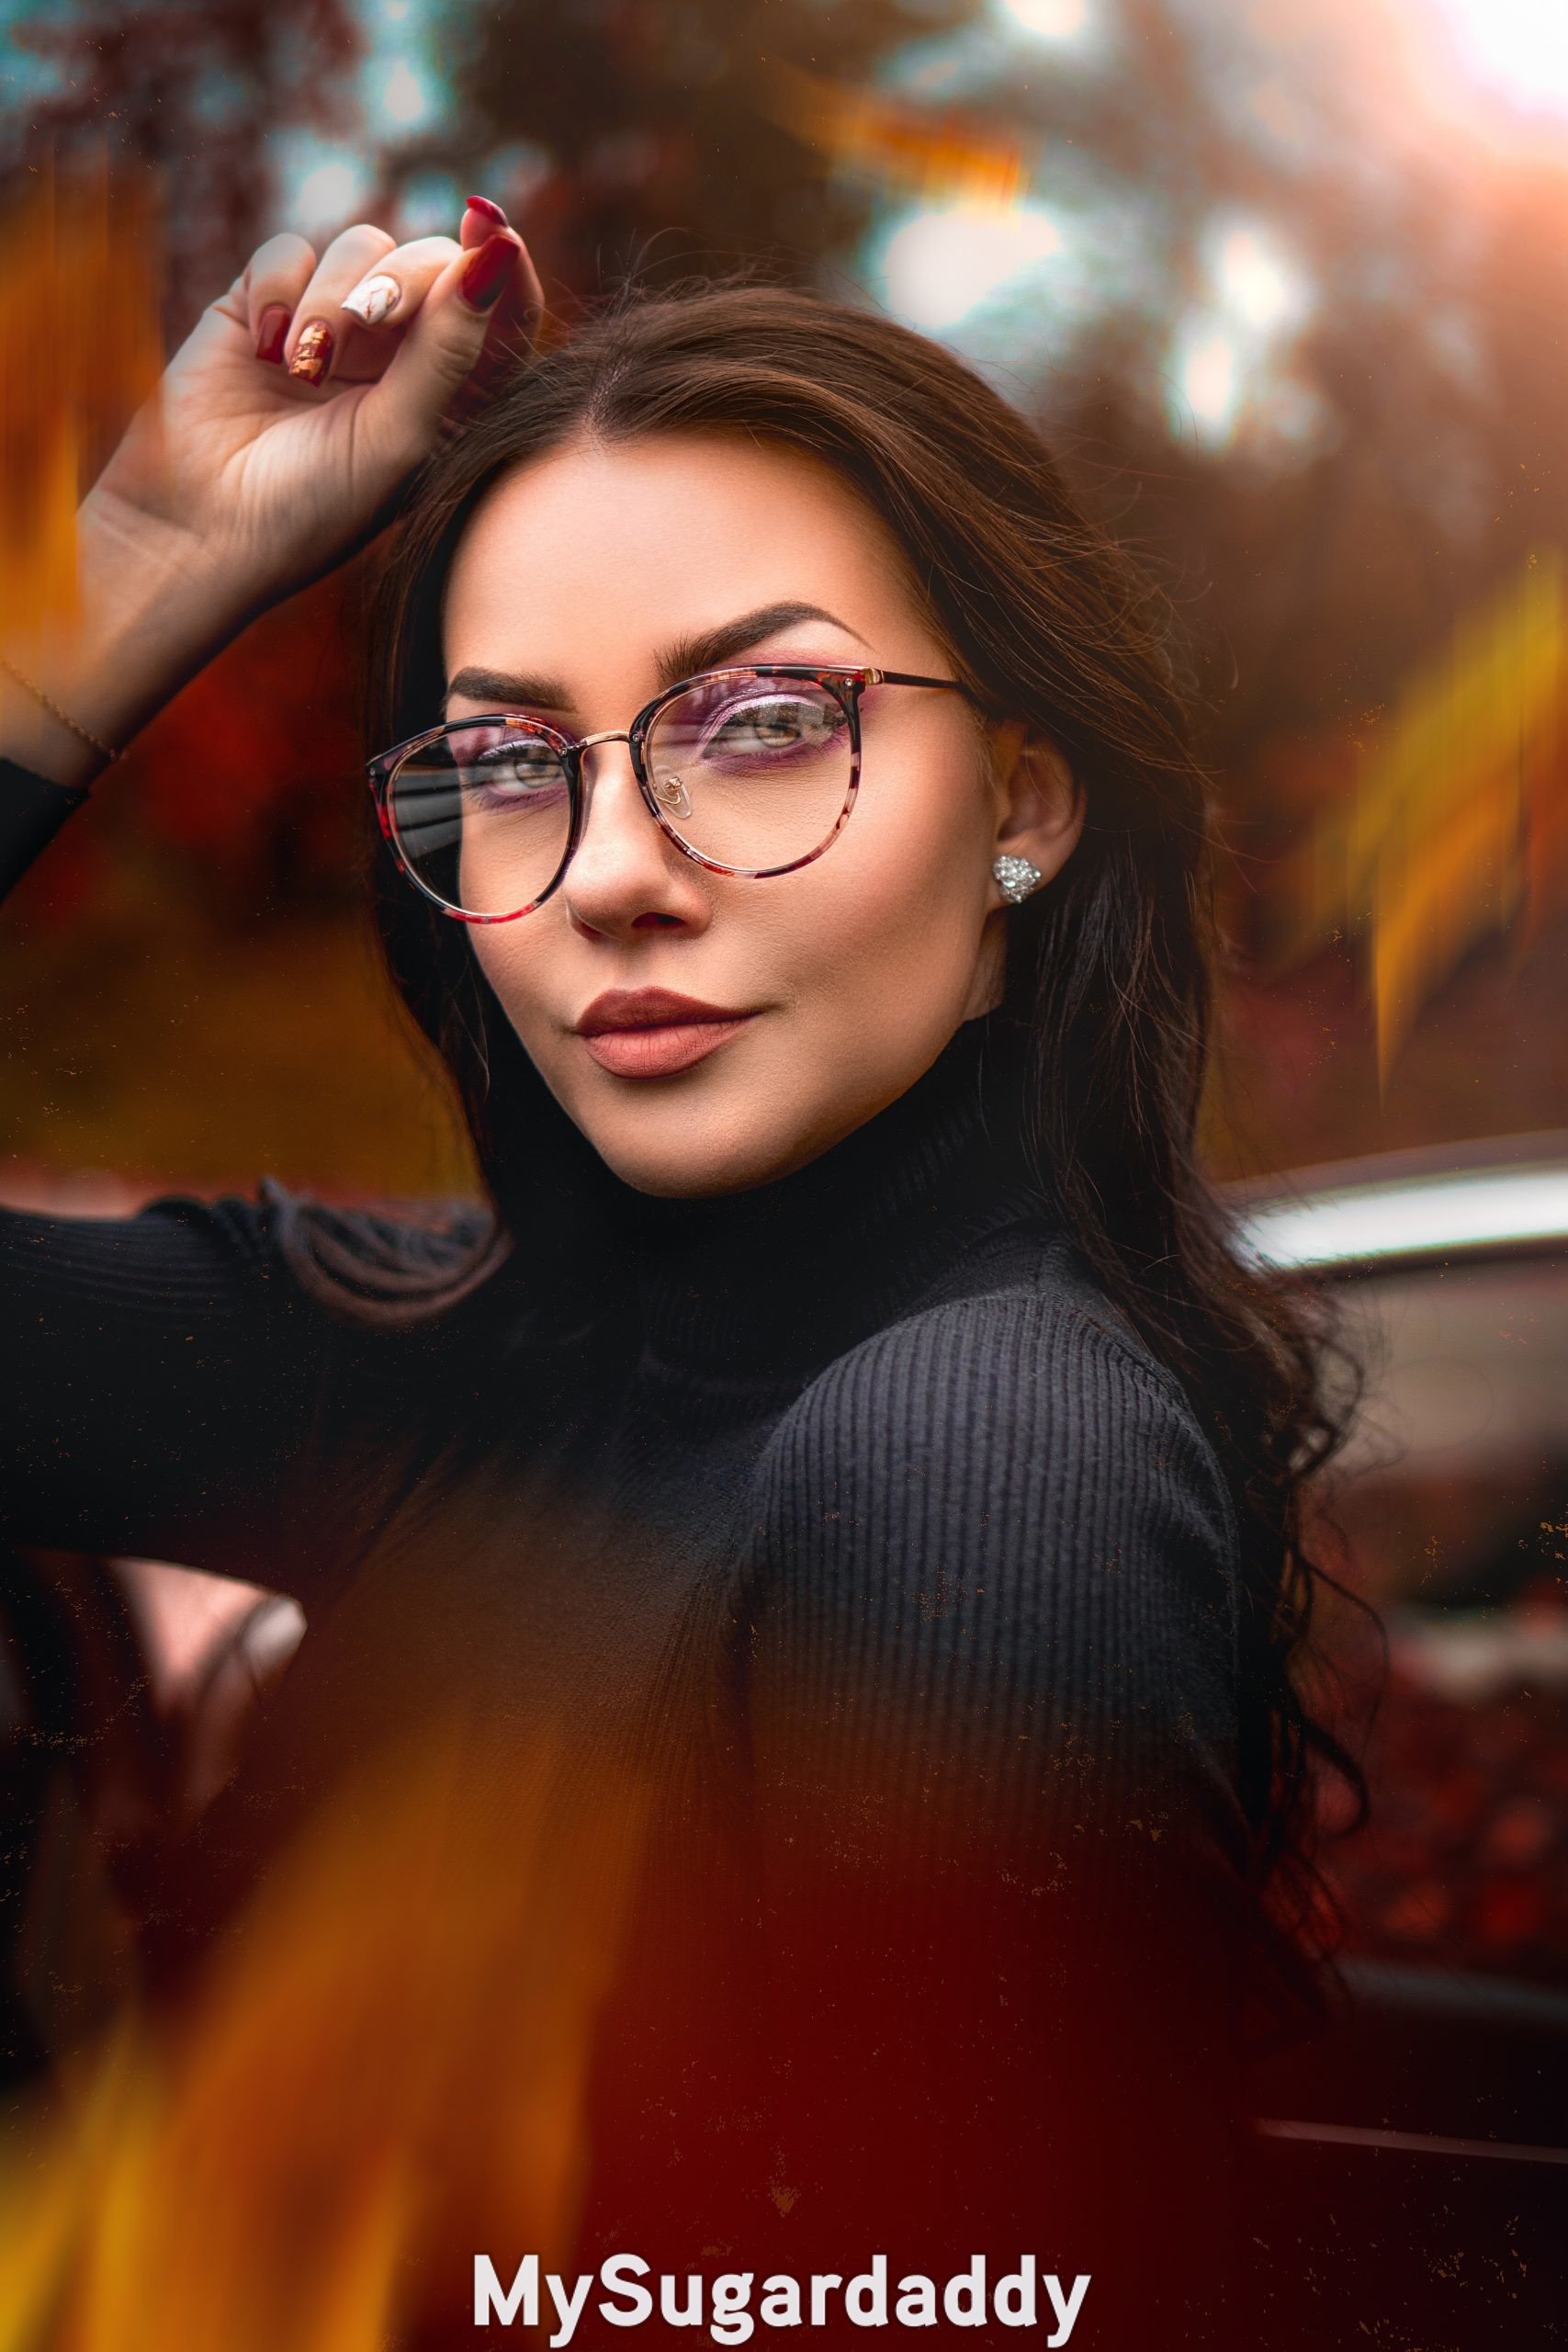 sexy but not vulgar is the way this woman looks with glasses